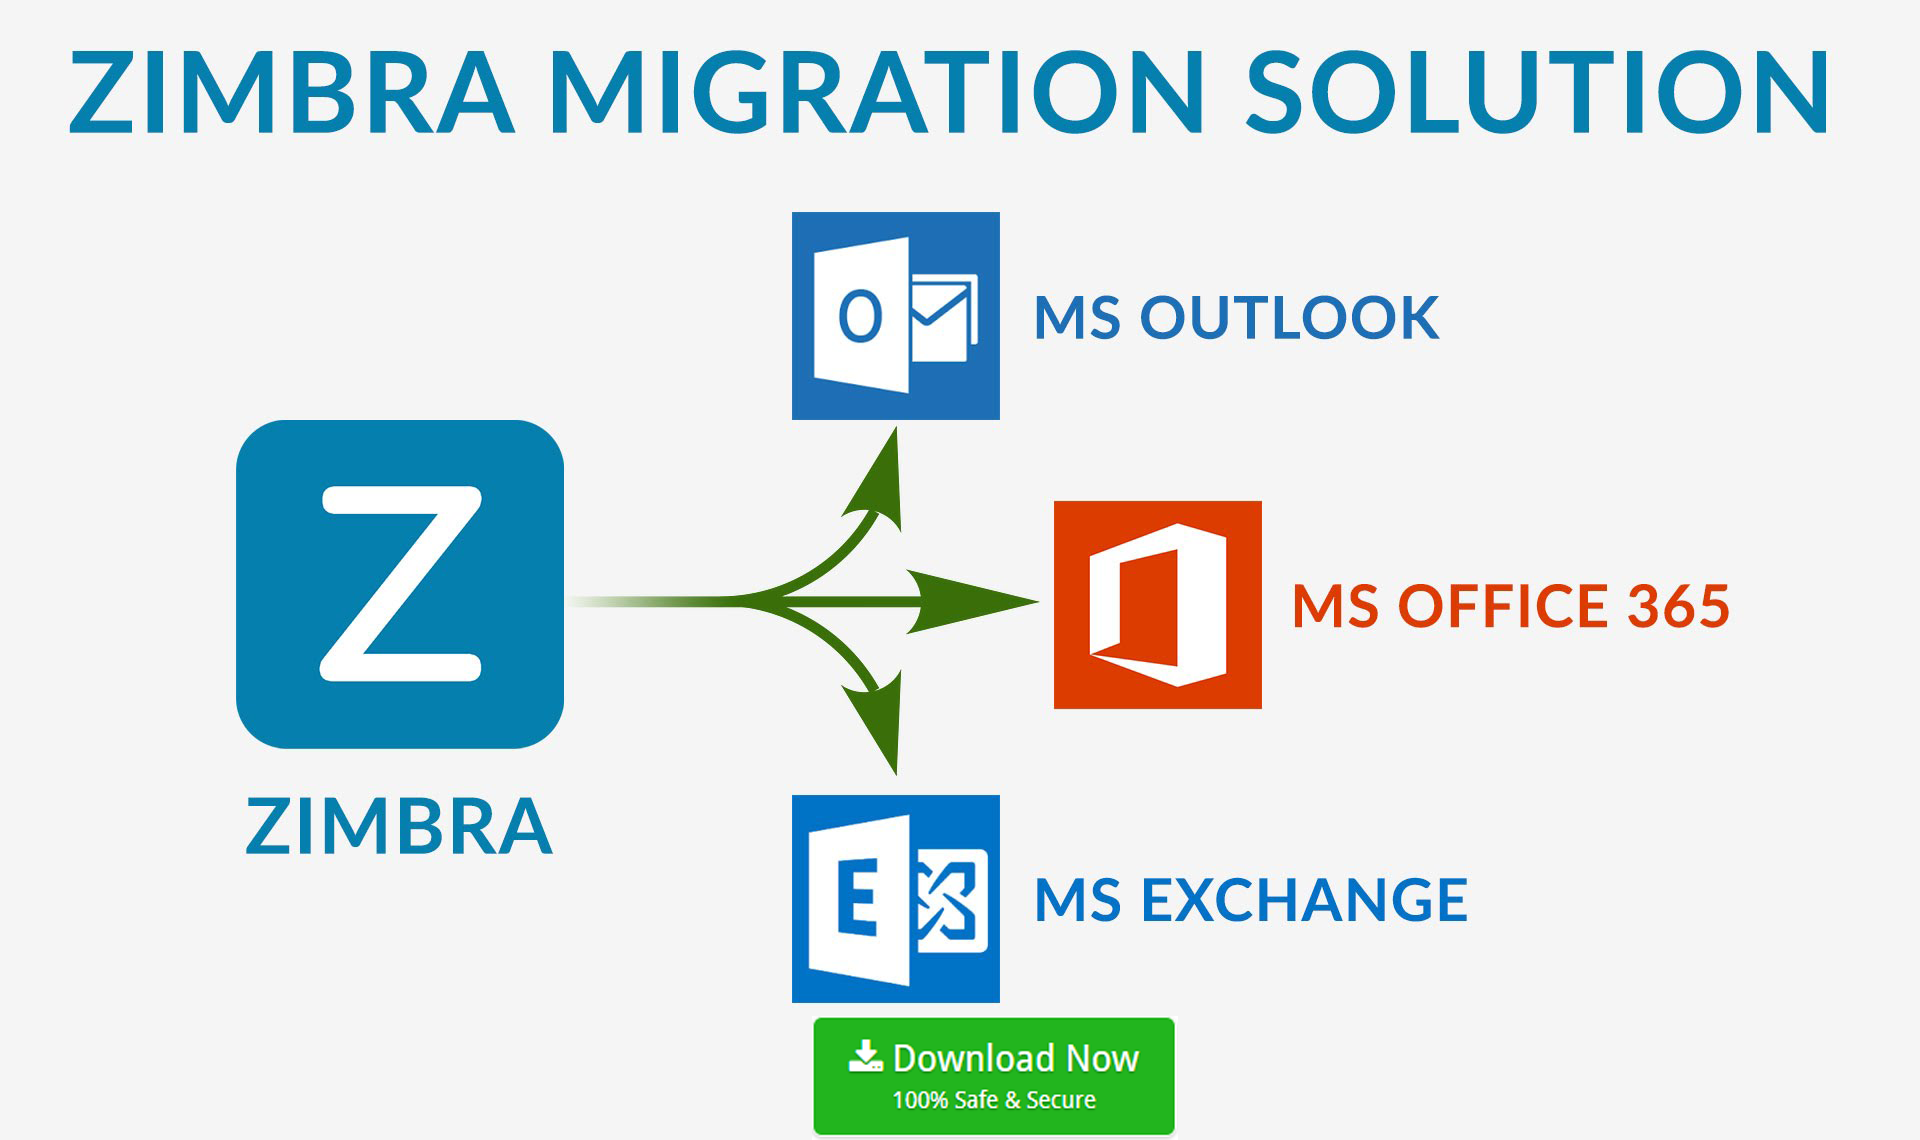 How to Configure Zimbra in Outlook - Use Zimbra Connector